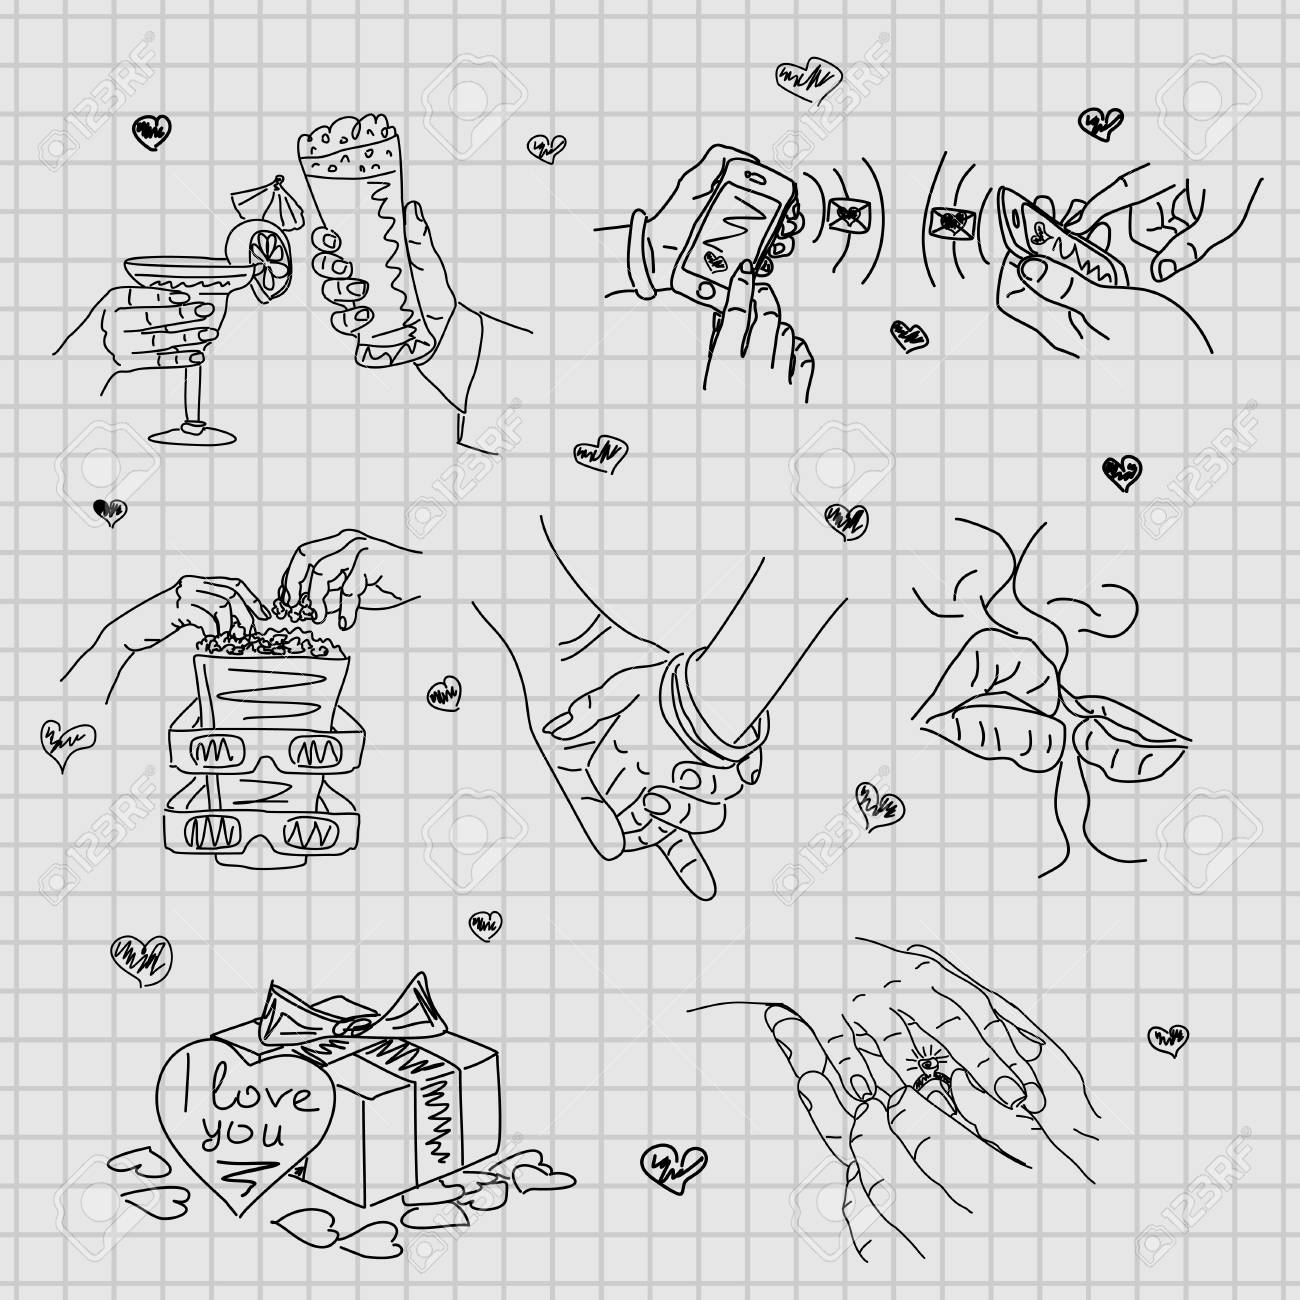 Love Story Set Of Vector Illustrations Of Love Cute Romantic Royalty Free Cliparts Vectors And Stock Illustration Image 70037049